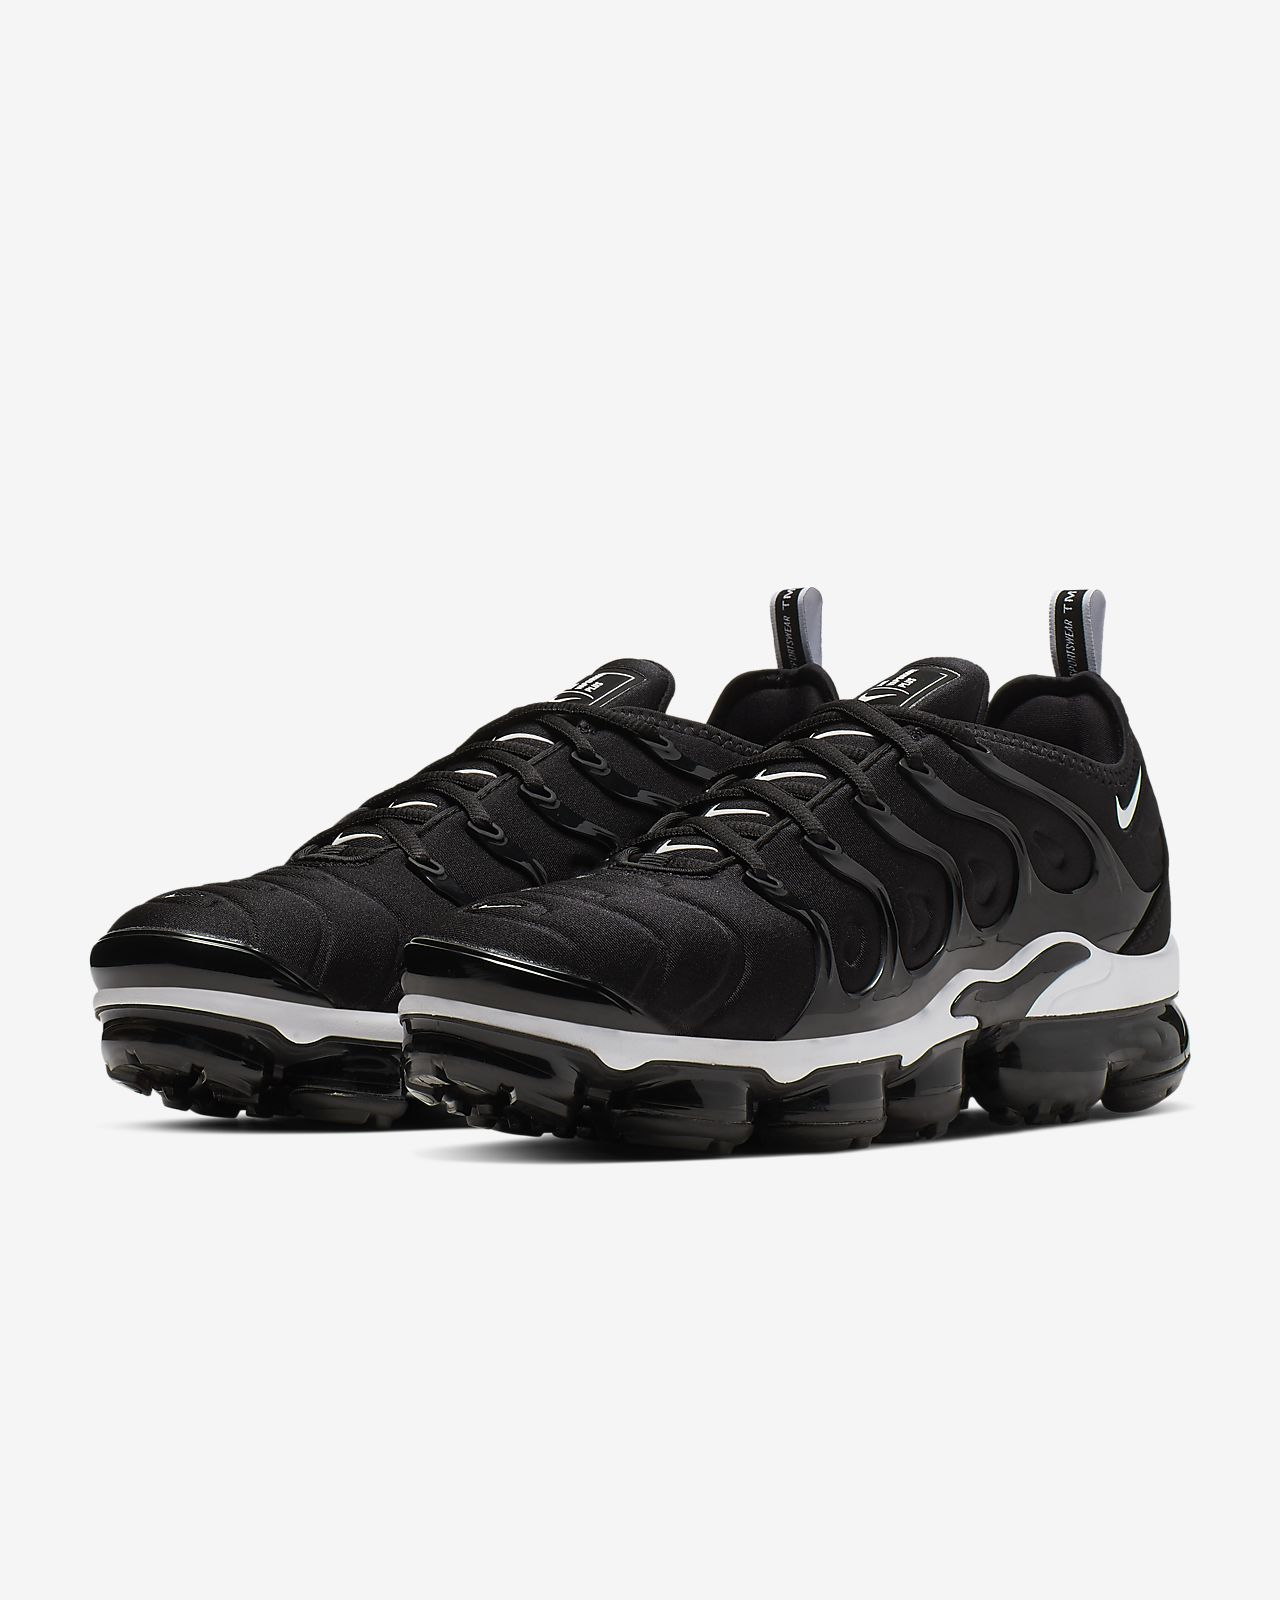 717b3e6a9e7a7 Nike Air VaporMax Plus Men s Shoe. Nike.com GB